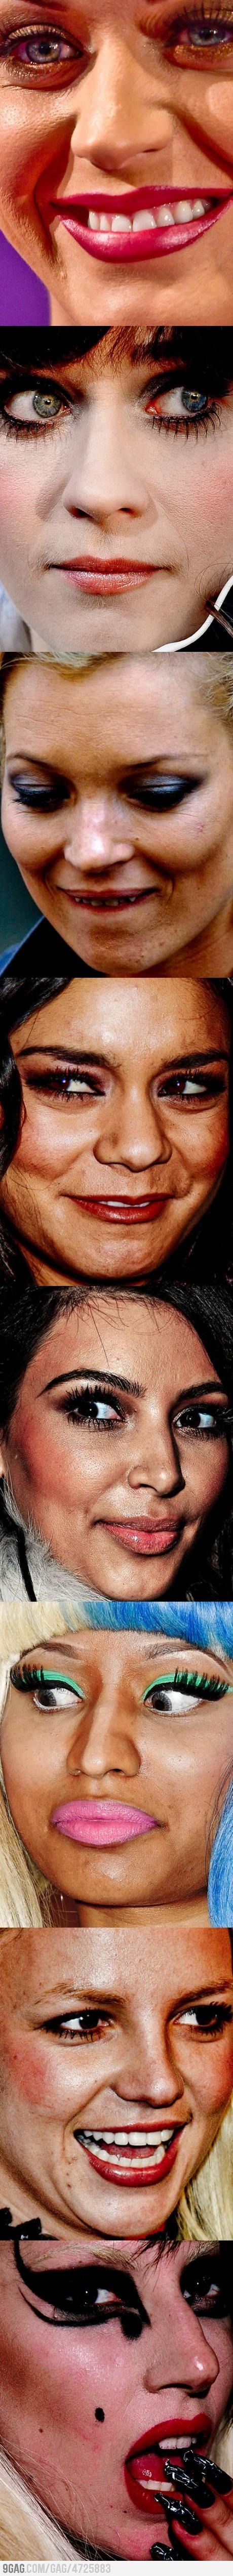 Celebs close up with no photoshop. It's hard to remember they are humans with pores, with so much photoshop done to them...